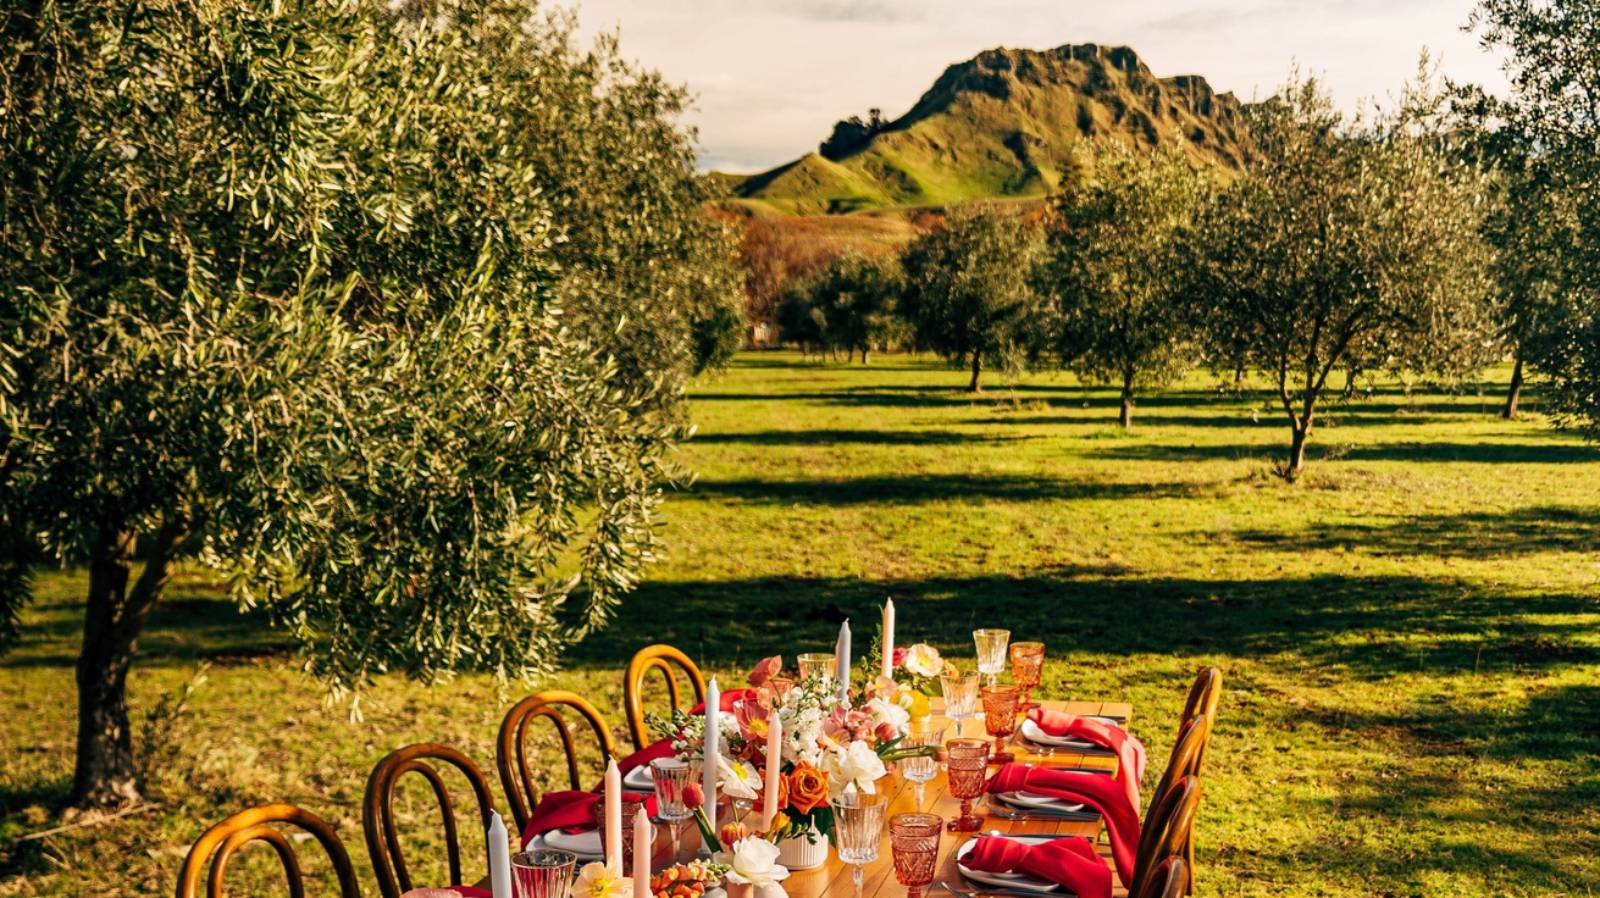 Win a foodie weekend in Hawke's Bay for F.A.W.C! Food and Wine Classic